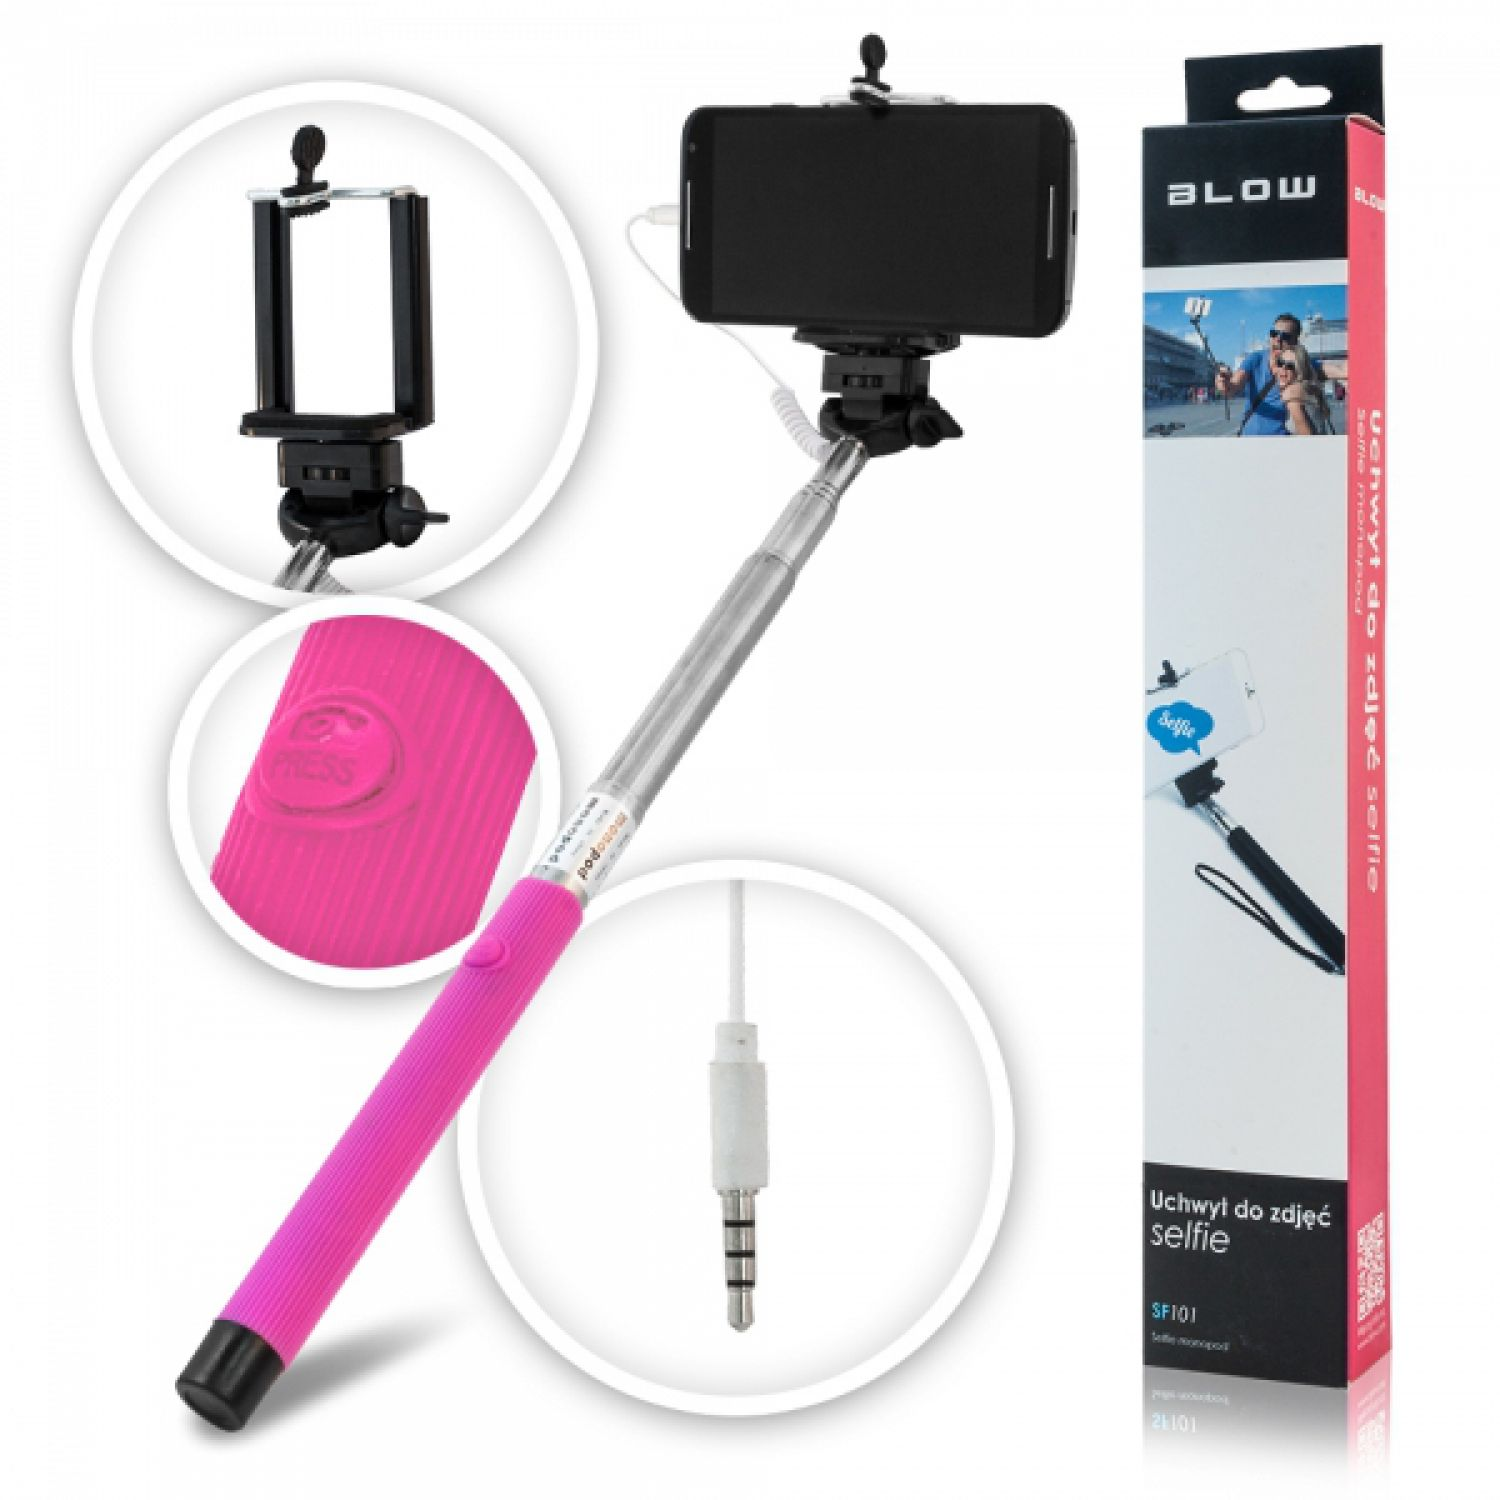 selfie stick rod blow pink selfy photo image ios android smartphone fixation ebay. Black Bedroom Furniture Sets. Home Design Ideas